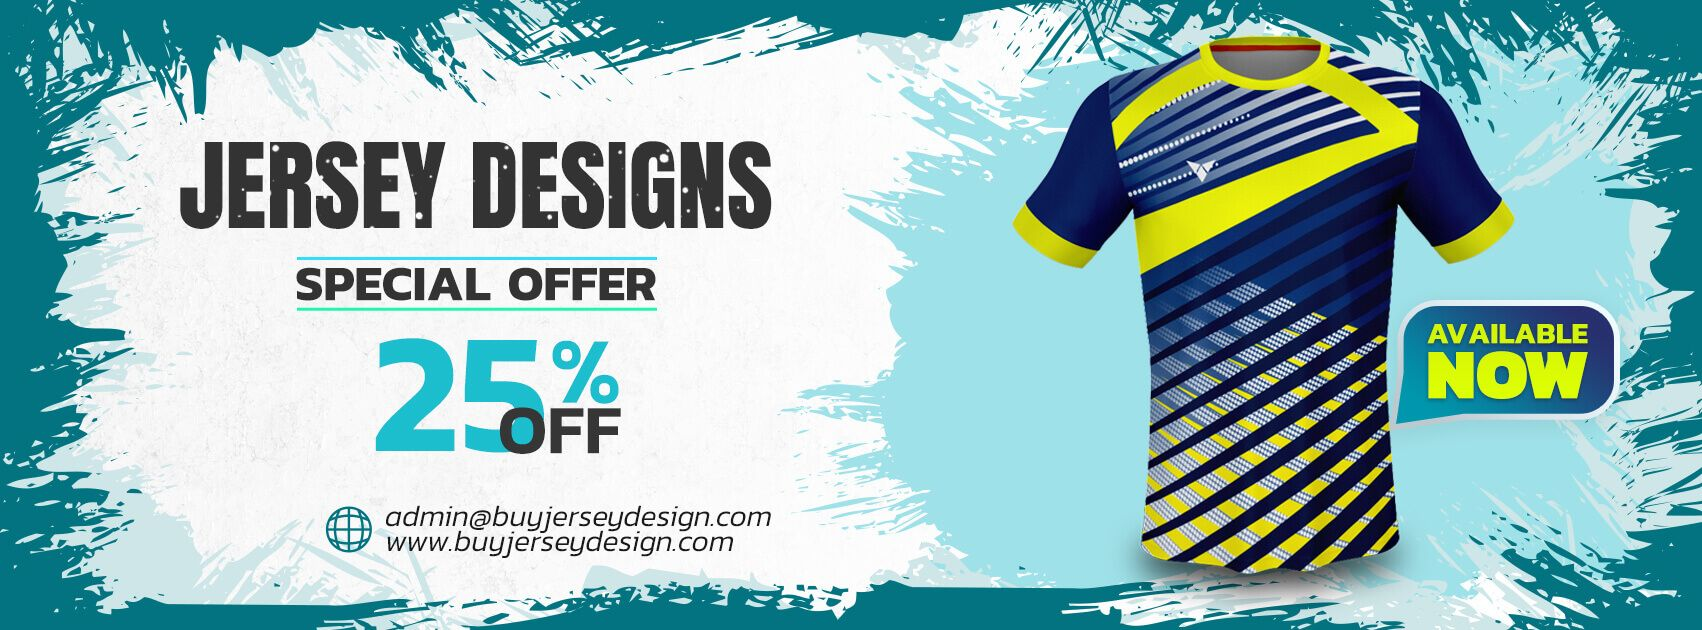 Download Jersey Designs Template Psd Download Jersey Design Custom Jerseys Design Template